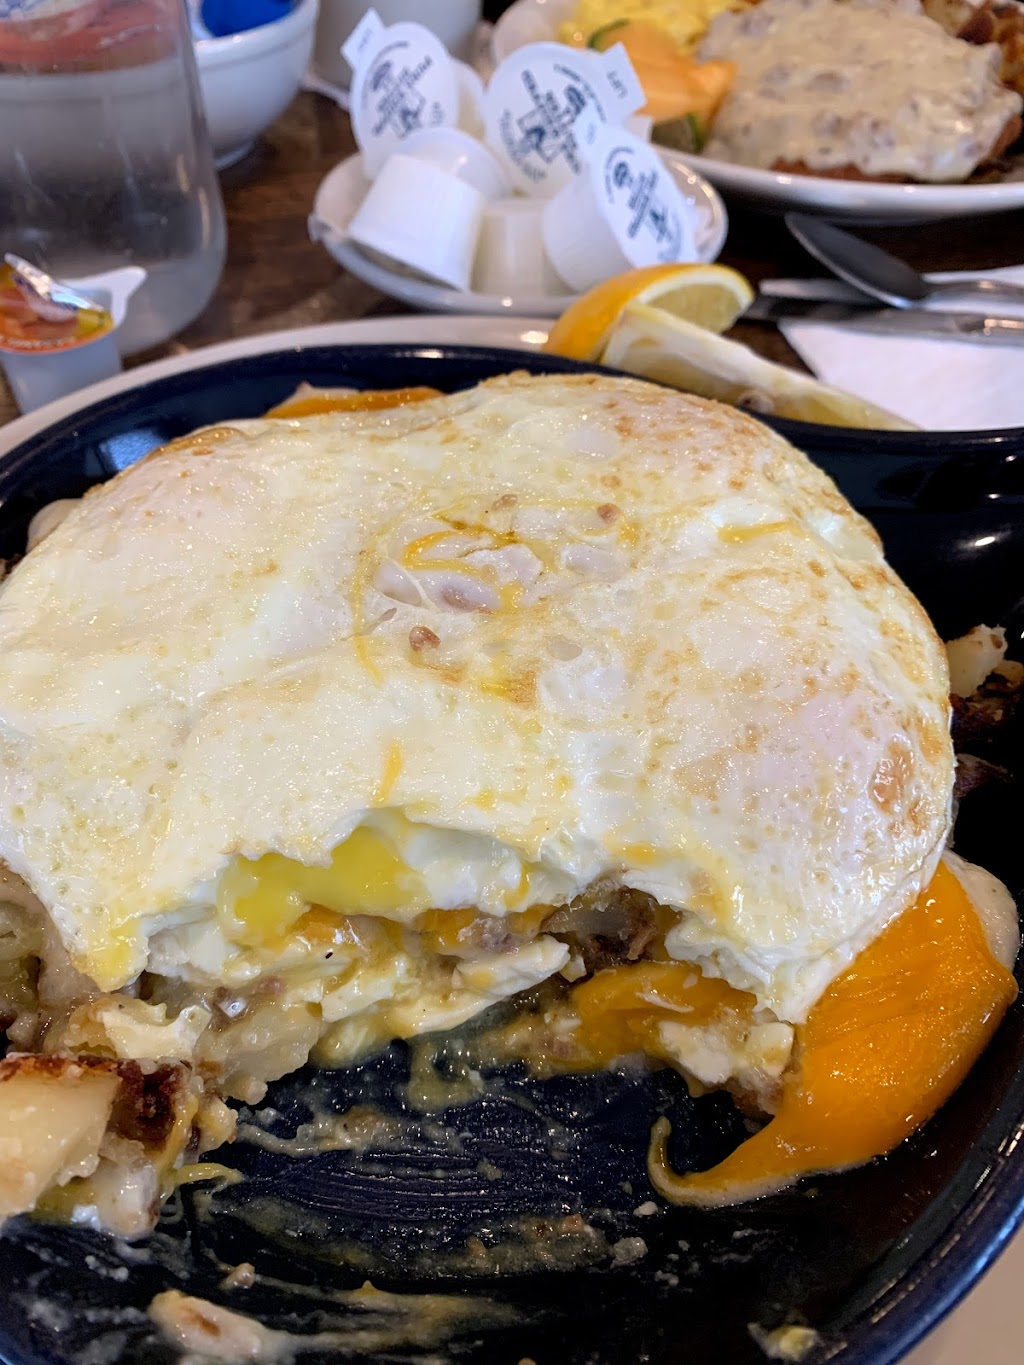 Blueberry Hill Breakfast Cafe - cafe    Photo 7 of 10   Address: 7340 IL-83, Darien, IL 60561, USA   Phone: (630) 734-1300